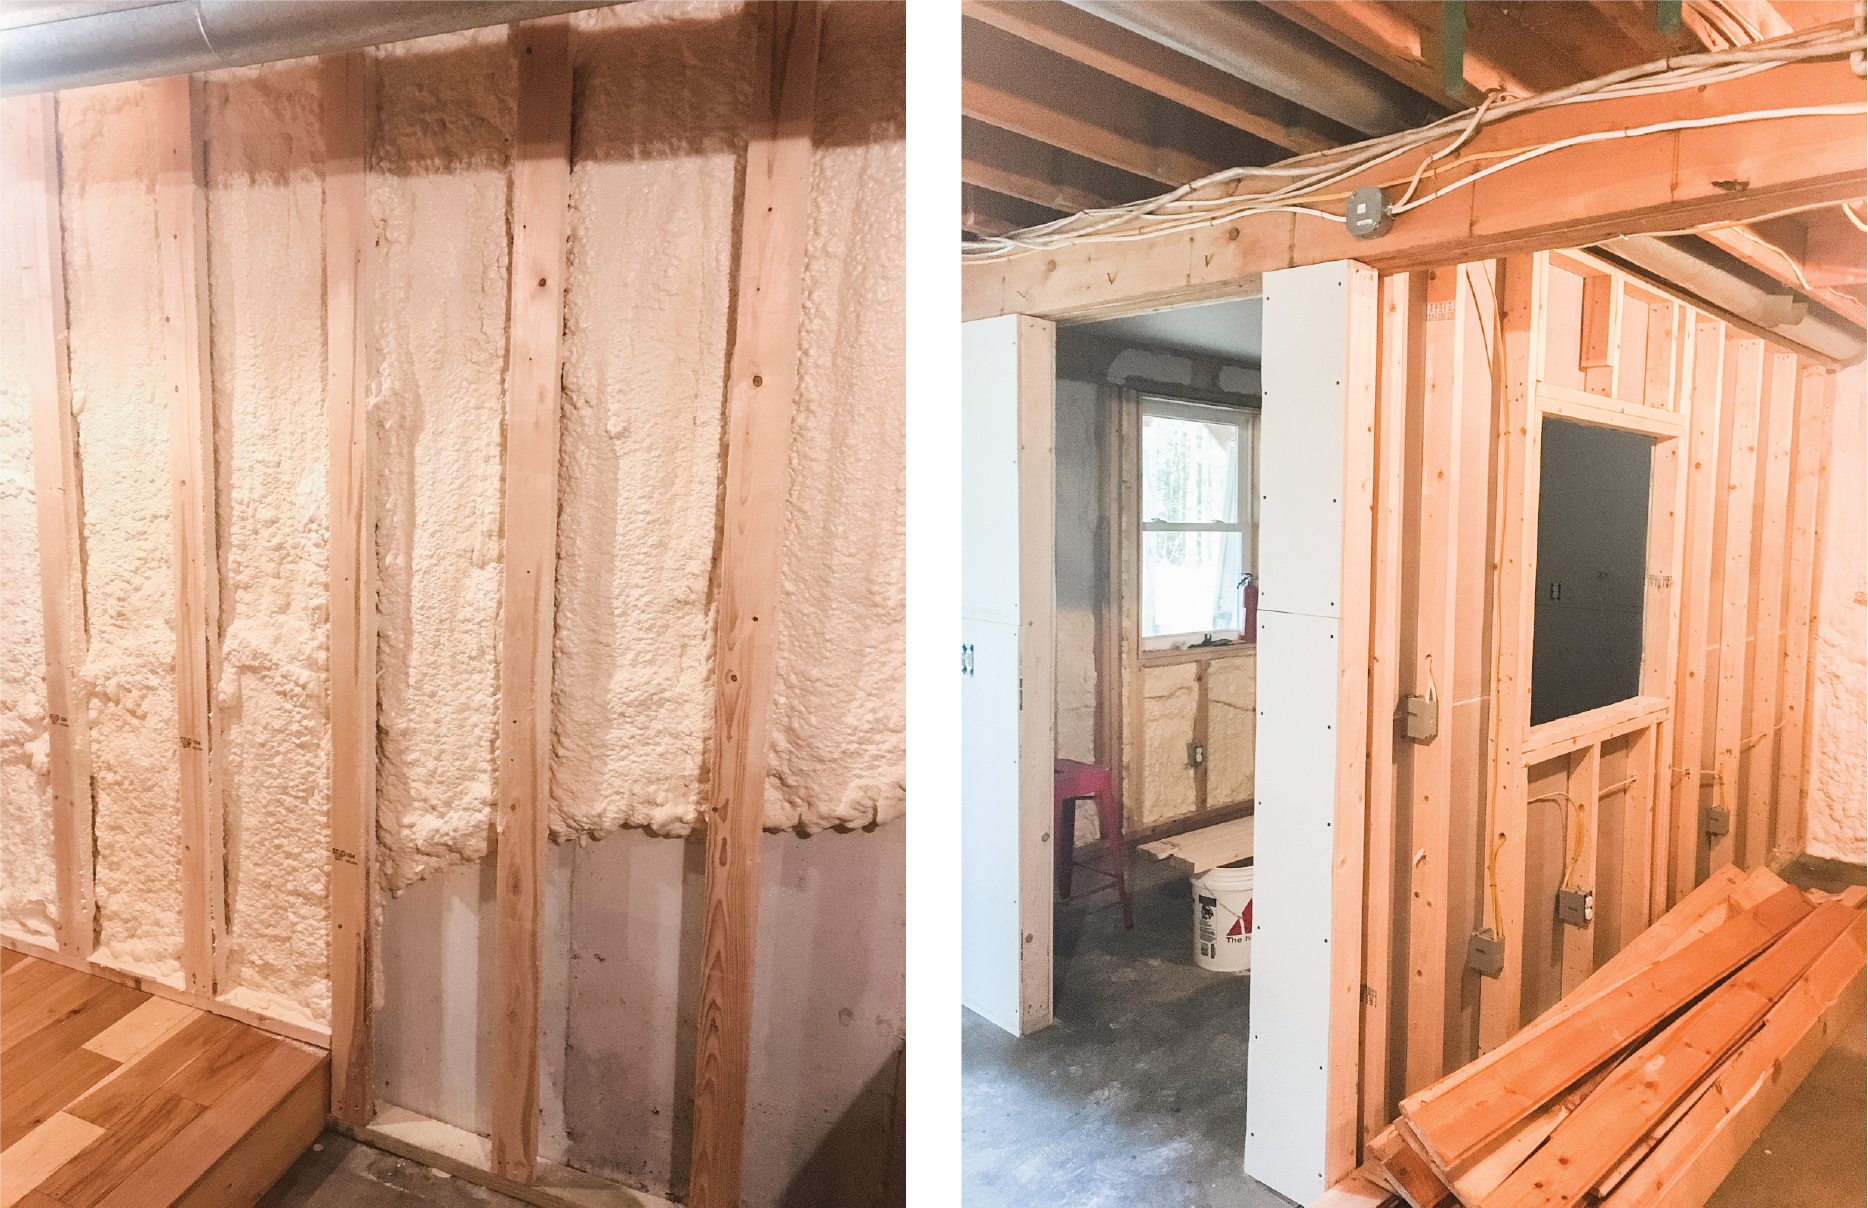 "Check it out! We spray foamed our basement and I am SO excited about it. 😁 I have many opinions about spray foam insulation, here are a few:  First the bad news... Spray foam chemicals are NOT awesome for the environment 🌳. And spray foam can be difficult to work with if you ever need to renovate or remodel. 🏠 If you are building a new home, I would probably recommend a different type of insulation. 👍🏻  BUT, the good news, if you have an existing basement, your heating money 💰 could go a lot further with a little spray foam. Here we have 2"" closed cell on the walls and 3"" closed cell at the ceiling joint (rim joist) as recommended by our spray foamer. He installed the spray foam 2' below grade on all walls. (You can see how it slopes up, 📐 following the grade.)  Our guy estimates that spray foaming our daylight ☀️ basement walls will save approximately 30% on our heating bills. Cha-ching! 🤑 And as for indoor air quality; this stuff will off-gas for about a year. Not ideal. 🤷🏻‍♀️ But our guy is educated 🤓 on this and reckons we probably get worse off-gassing with the electronics 🔌 in our house. Nothing is perfect...  If you need help strategizing your project, message me. 🙋🏻‍♀️ I have LOTS of opinions and I know the right people to get it done."